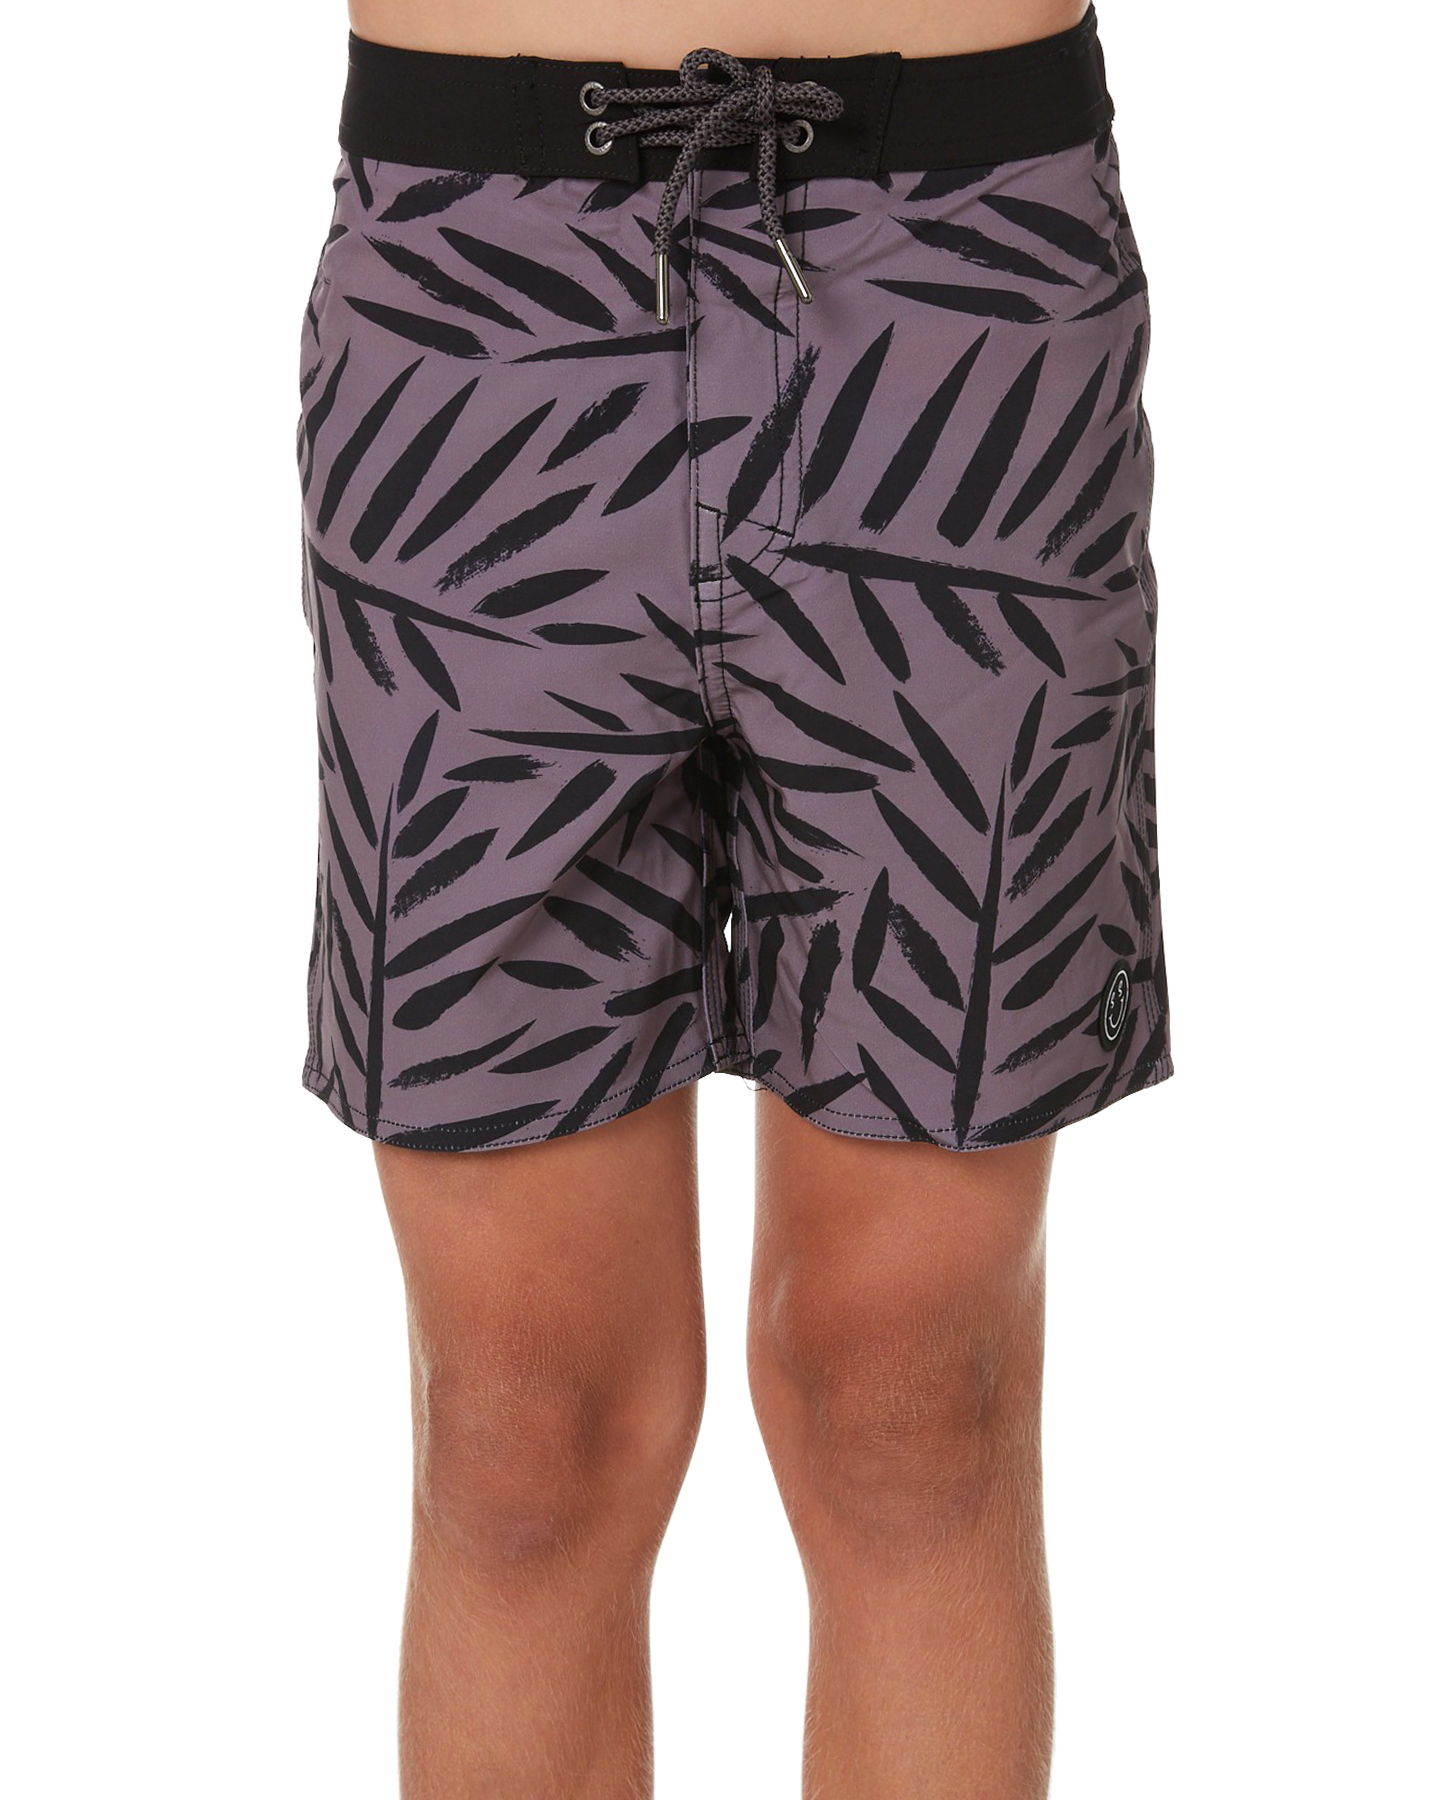 Stay Boys Grief Trunk - Teens Charcoal Charcoal